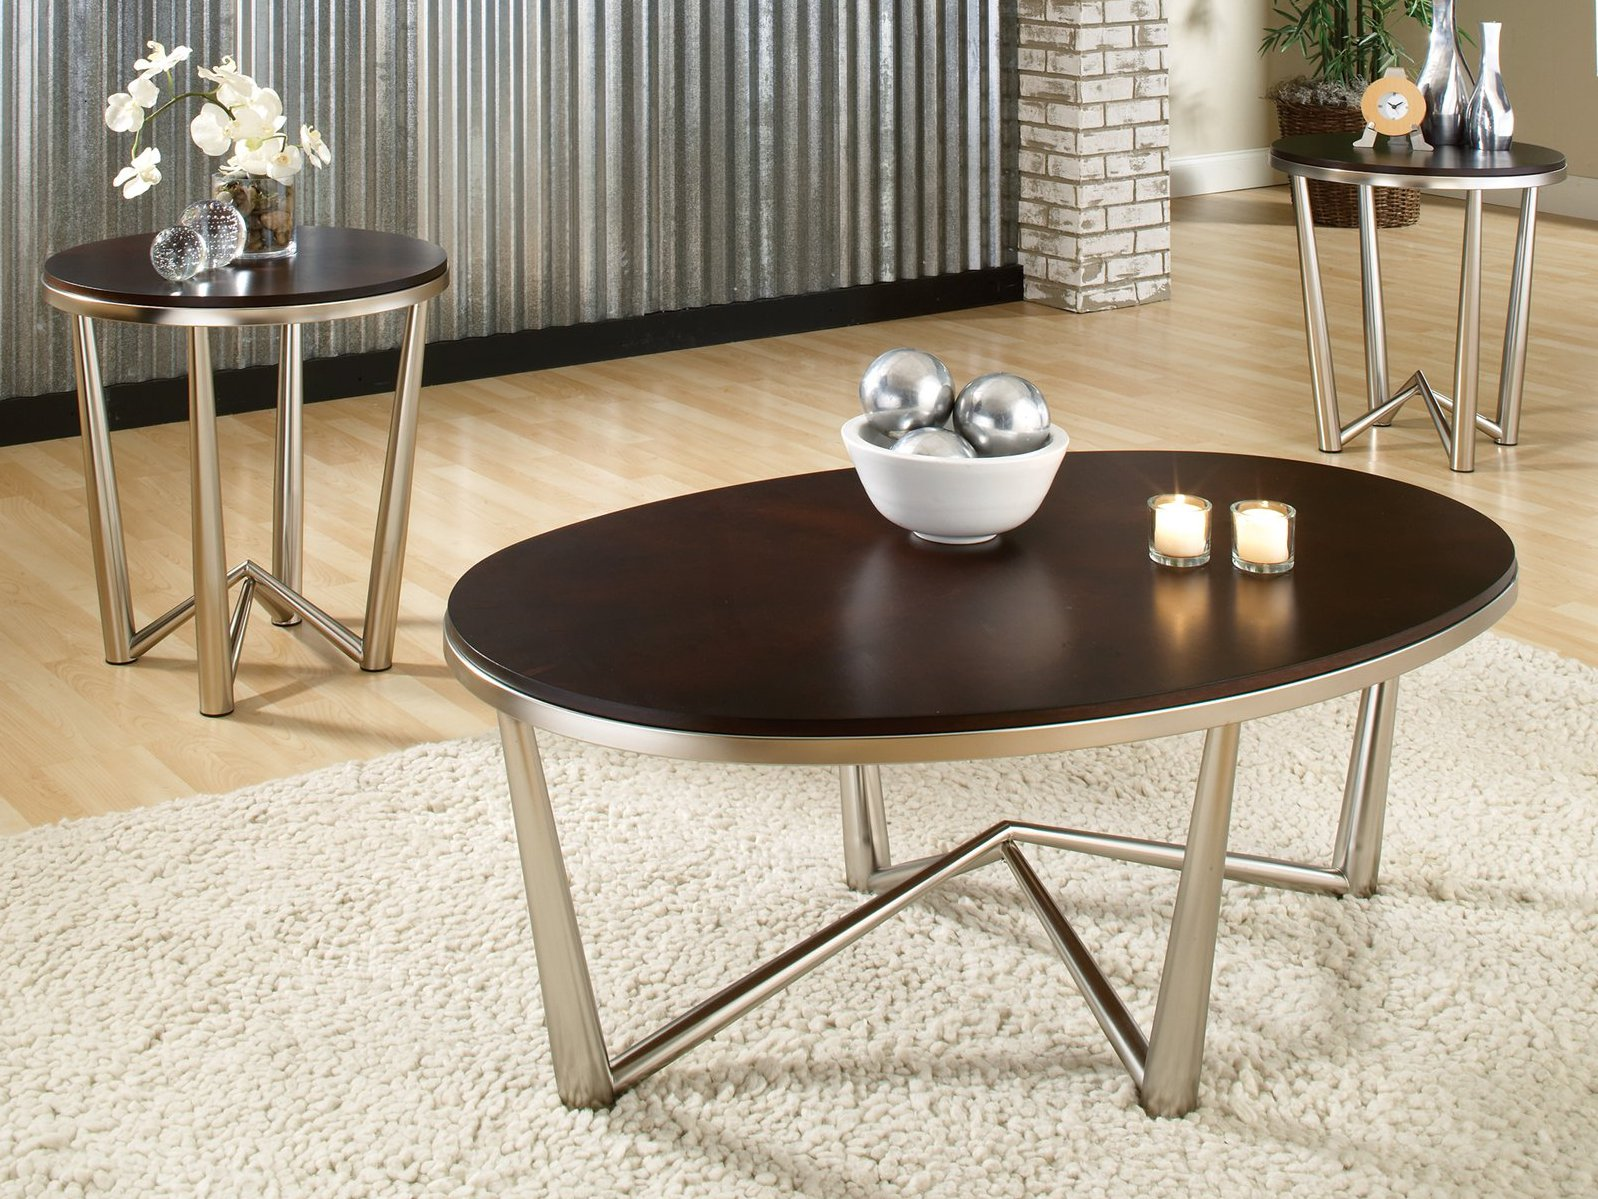 Cherry Wood Coffee Table with Metal Legs